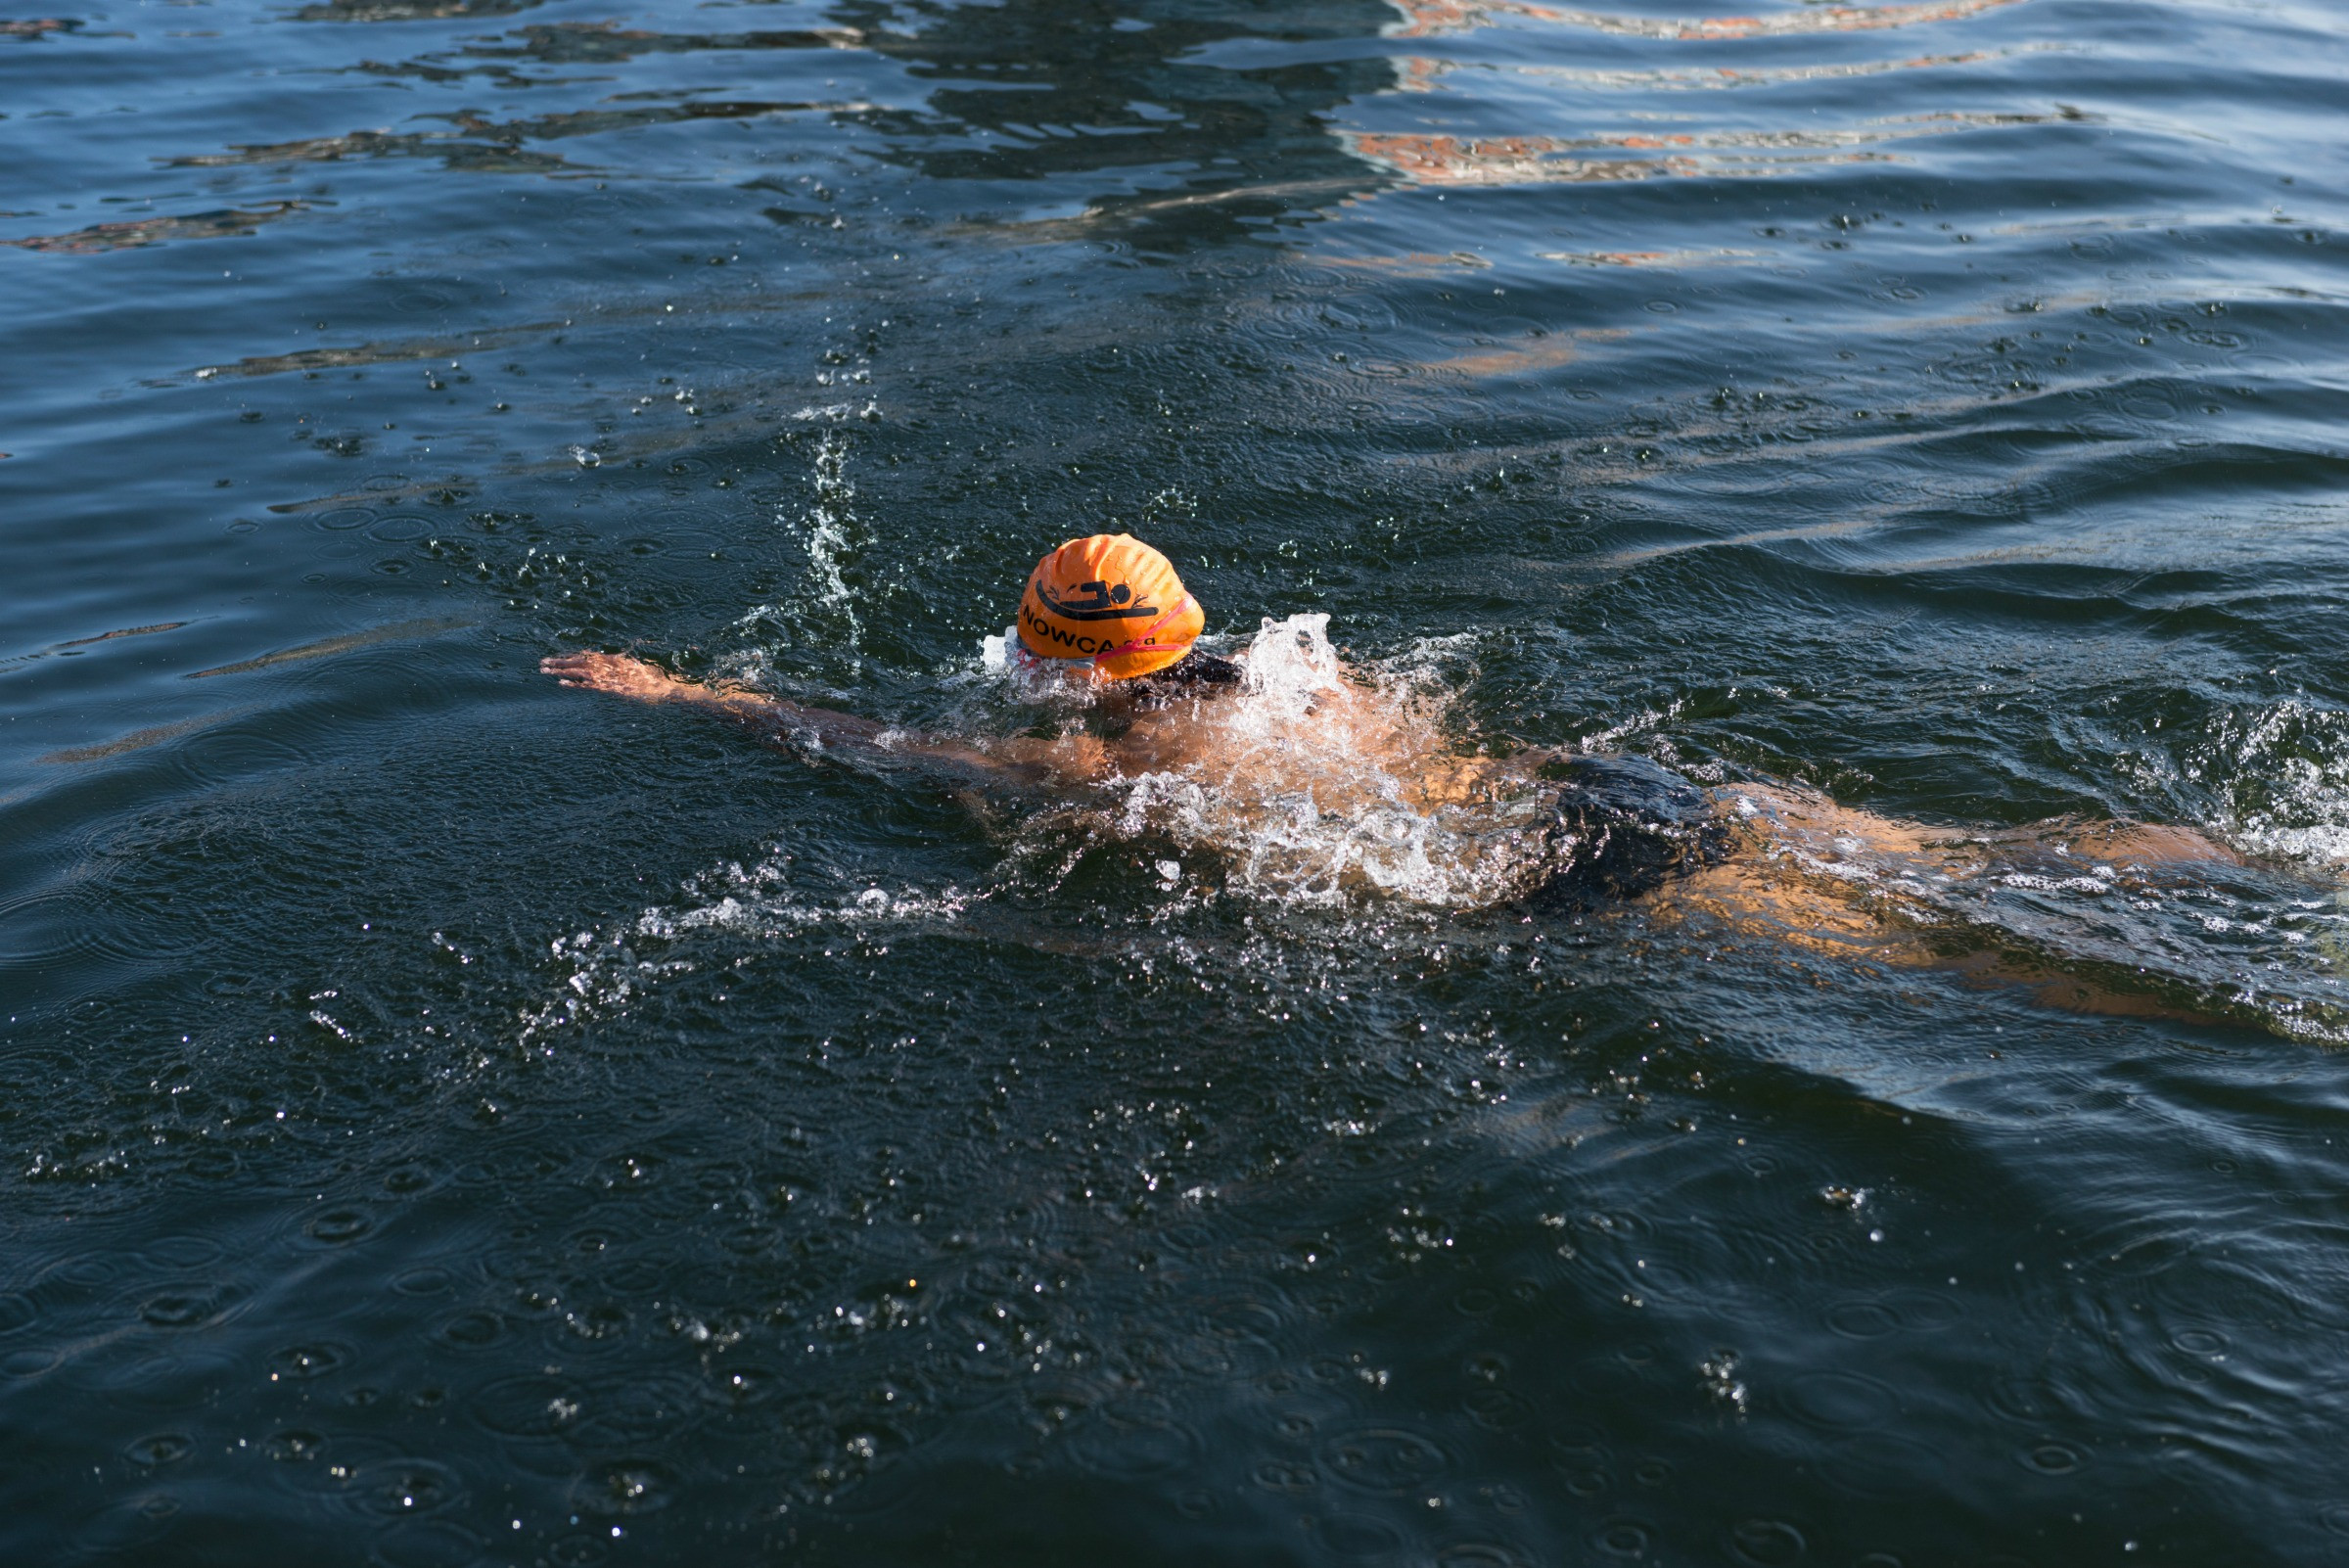 A swimmer in the Royal Docks water